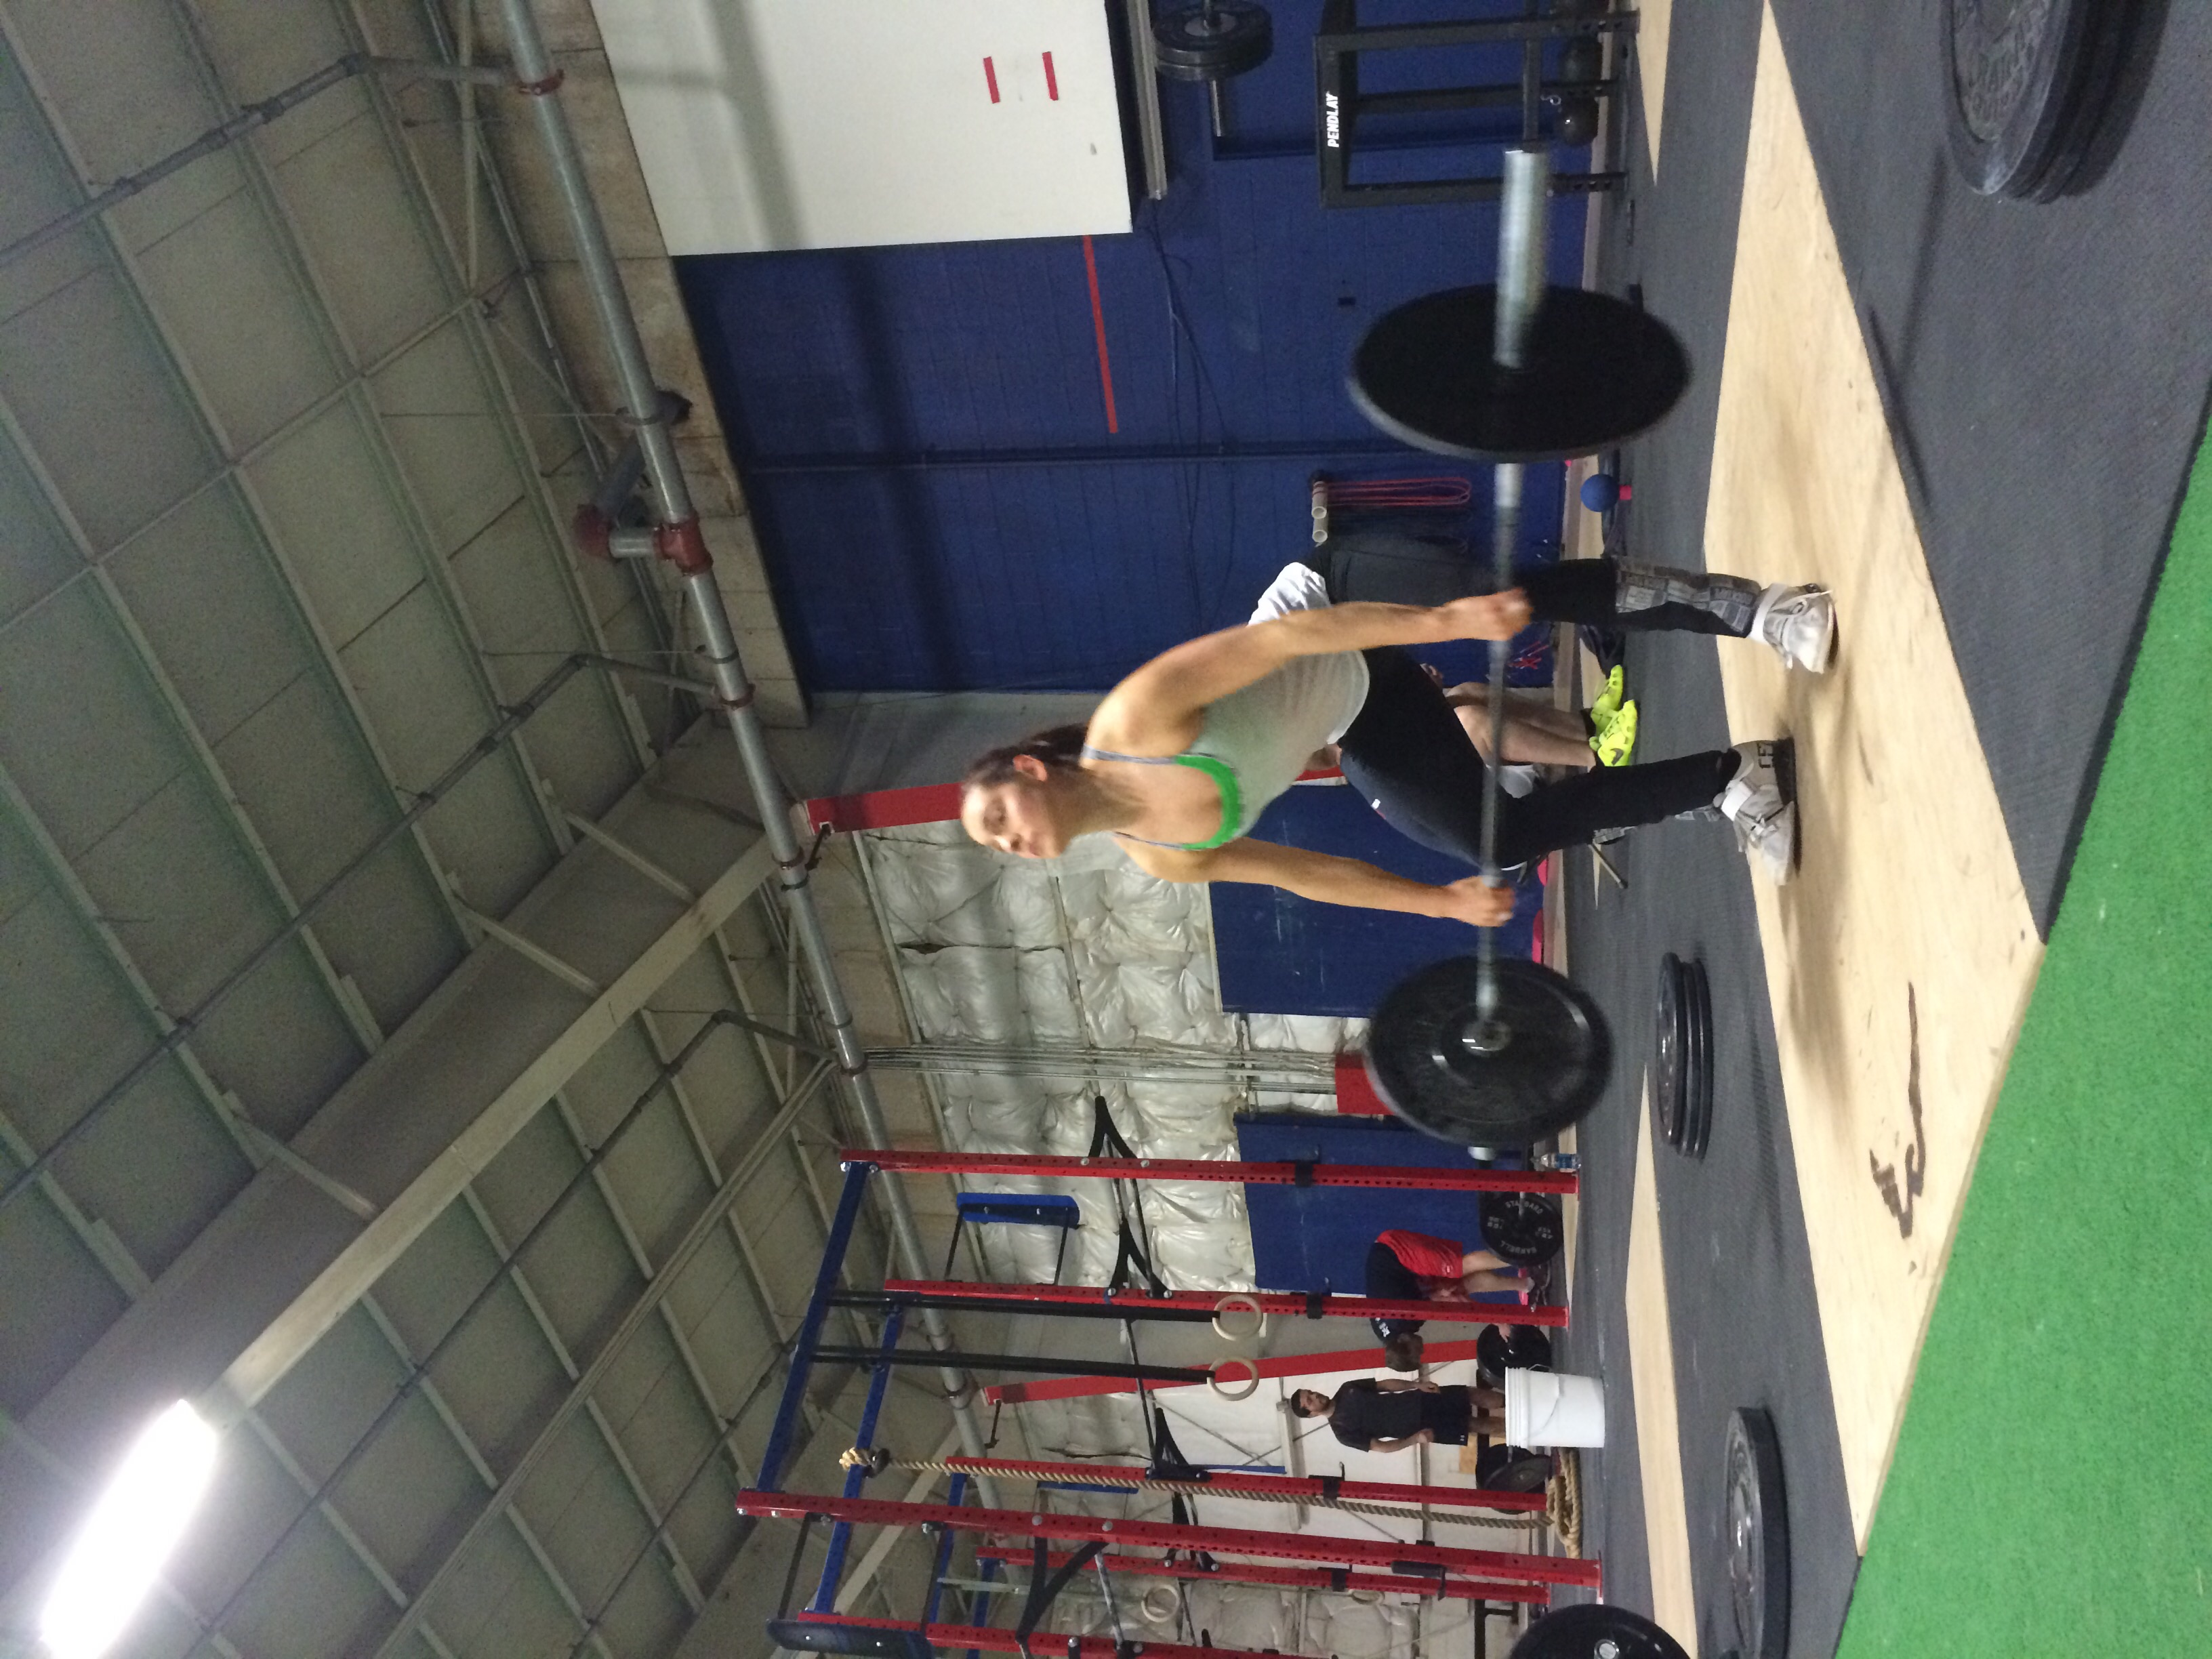 Kathleen from Primal Treats & Eats stopped by for delivery and got her WOD on.